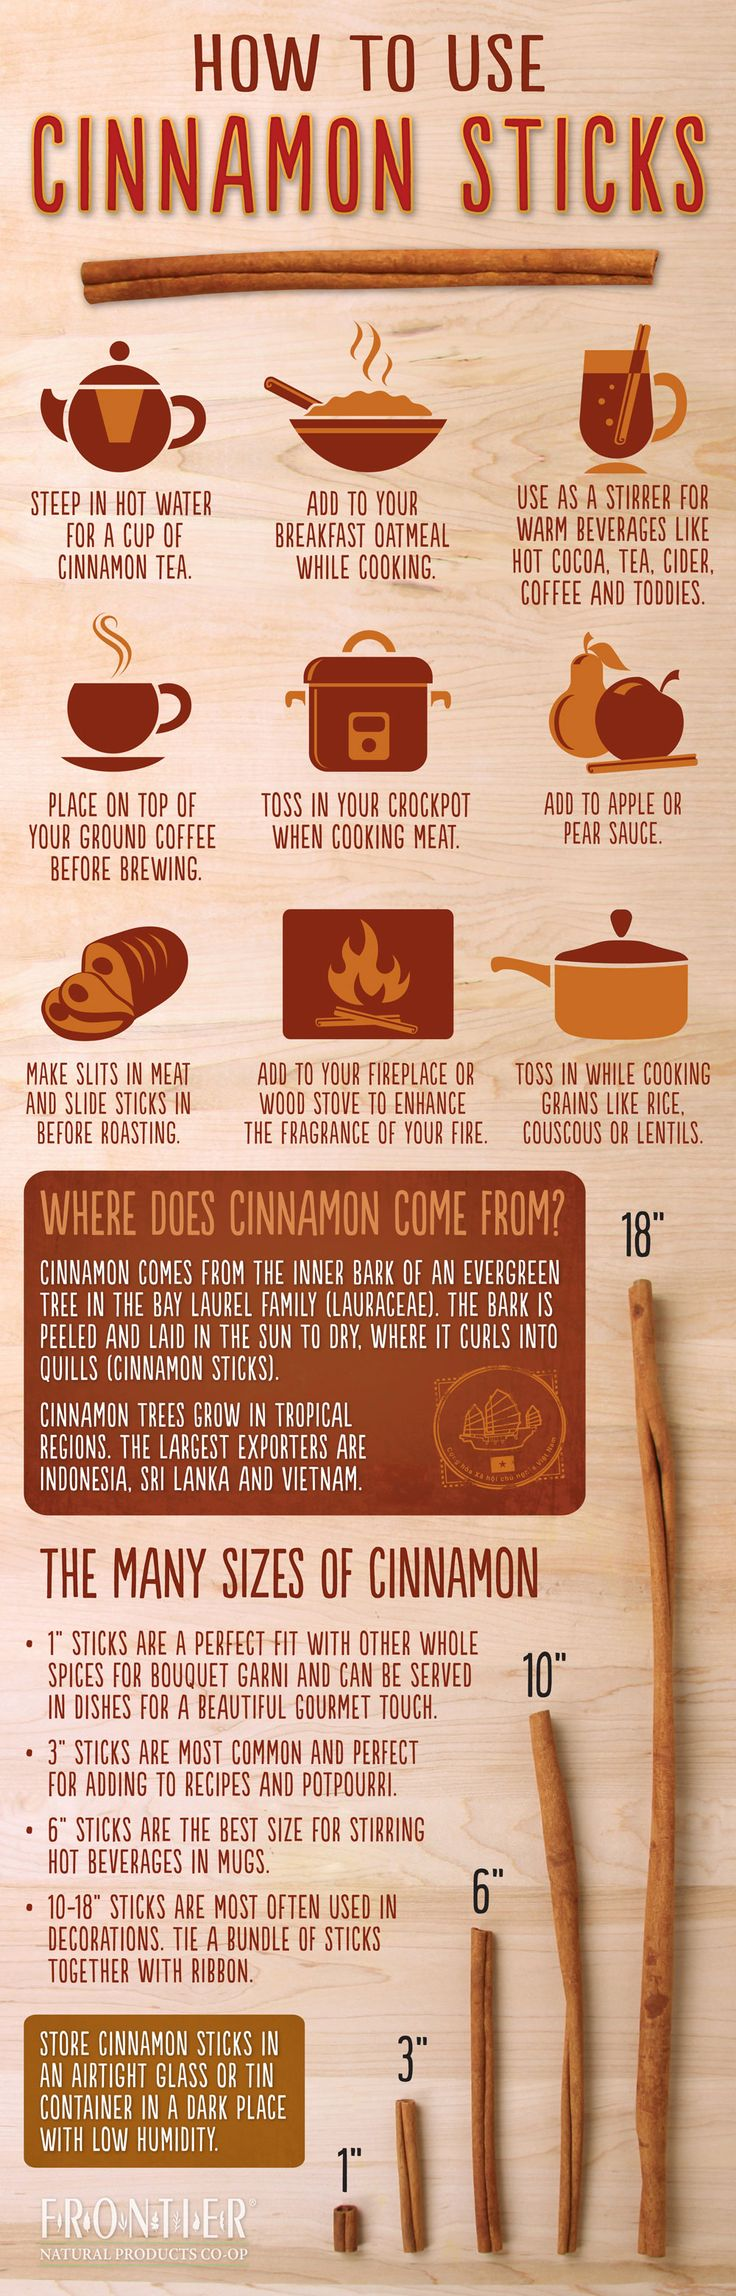 HOW TO USE CINNAMON STICKS. Enjoy this cool infographic detailing uses of this…